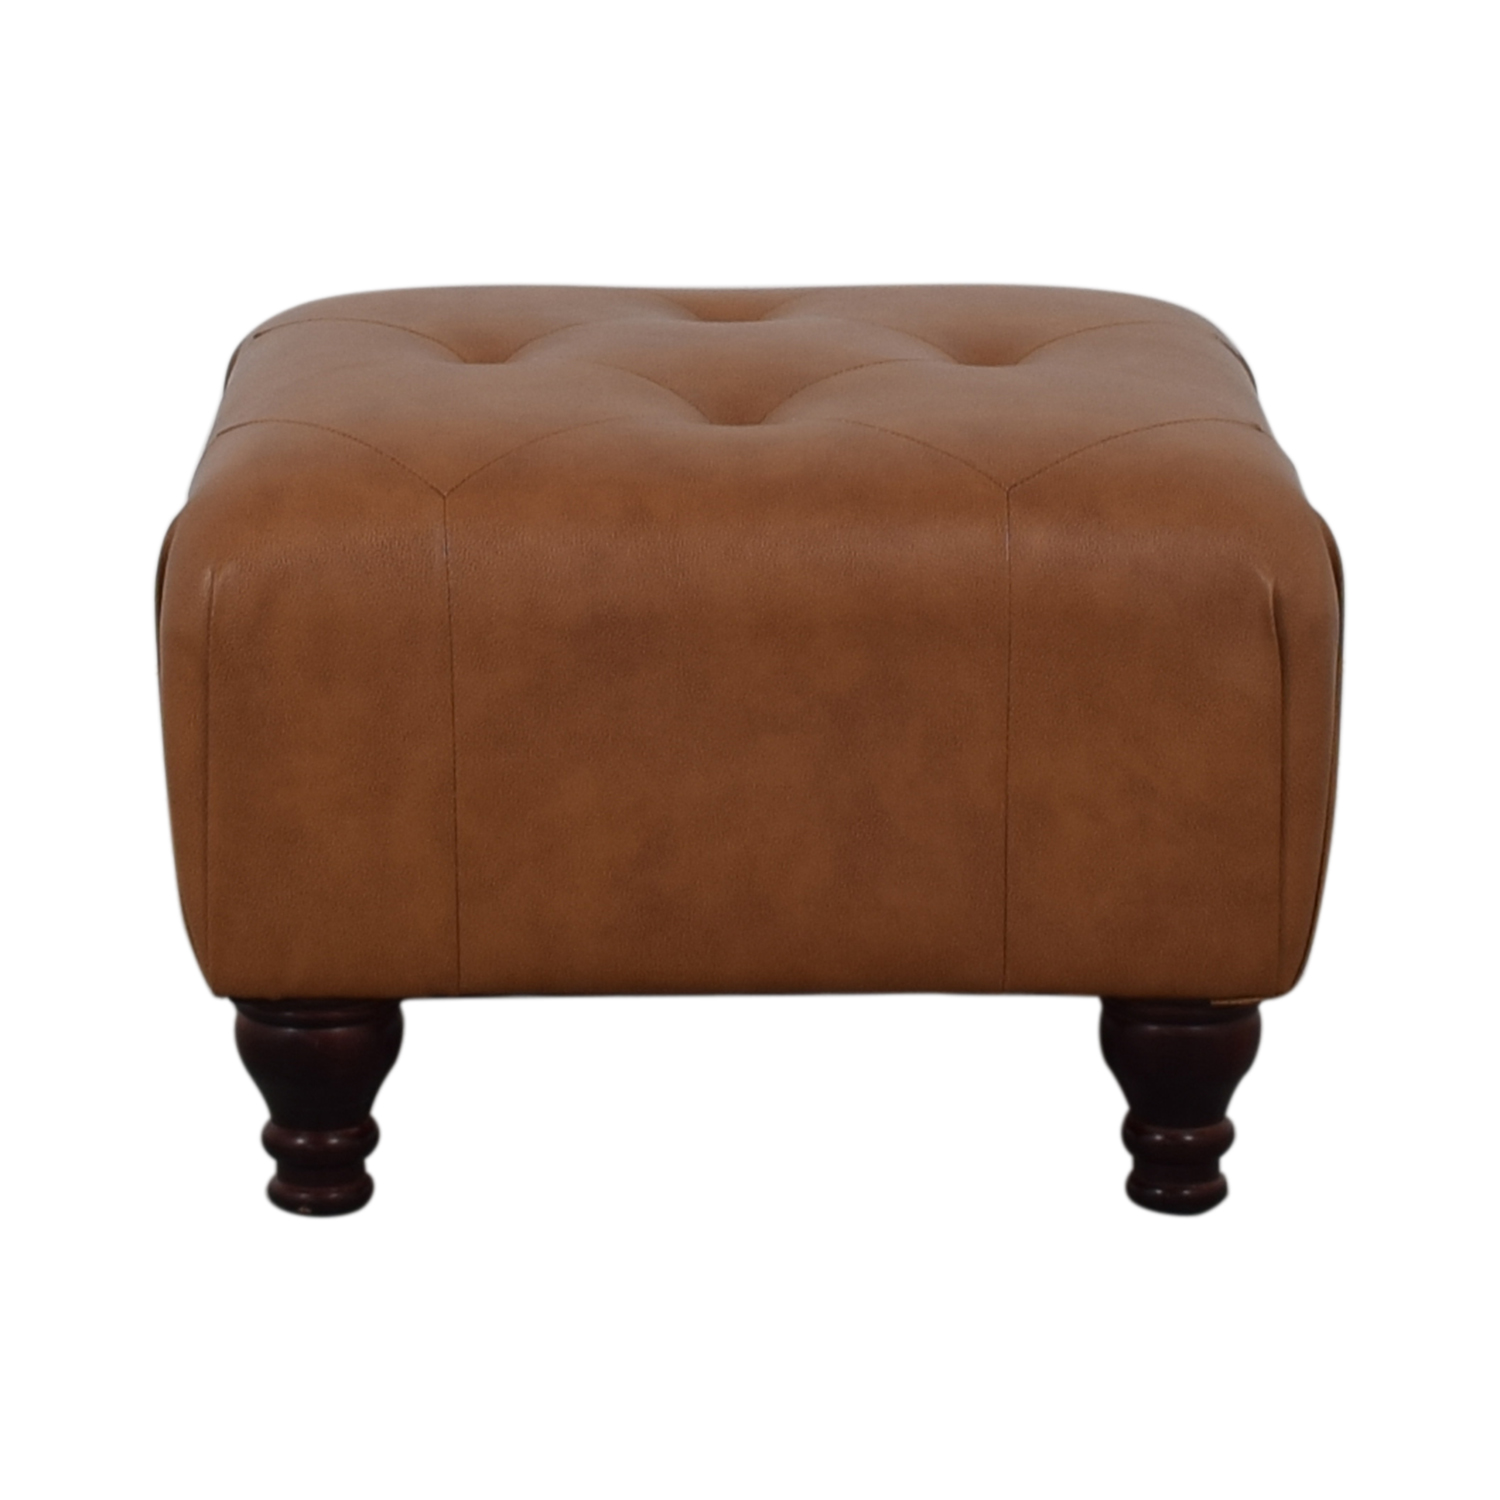 buy  Brown Tufted Ottoman online